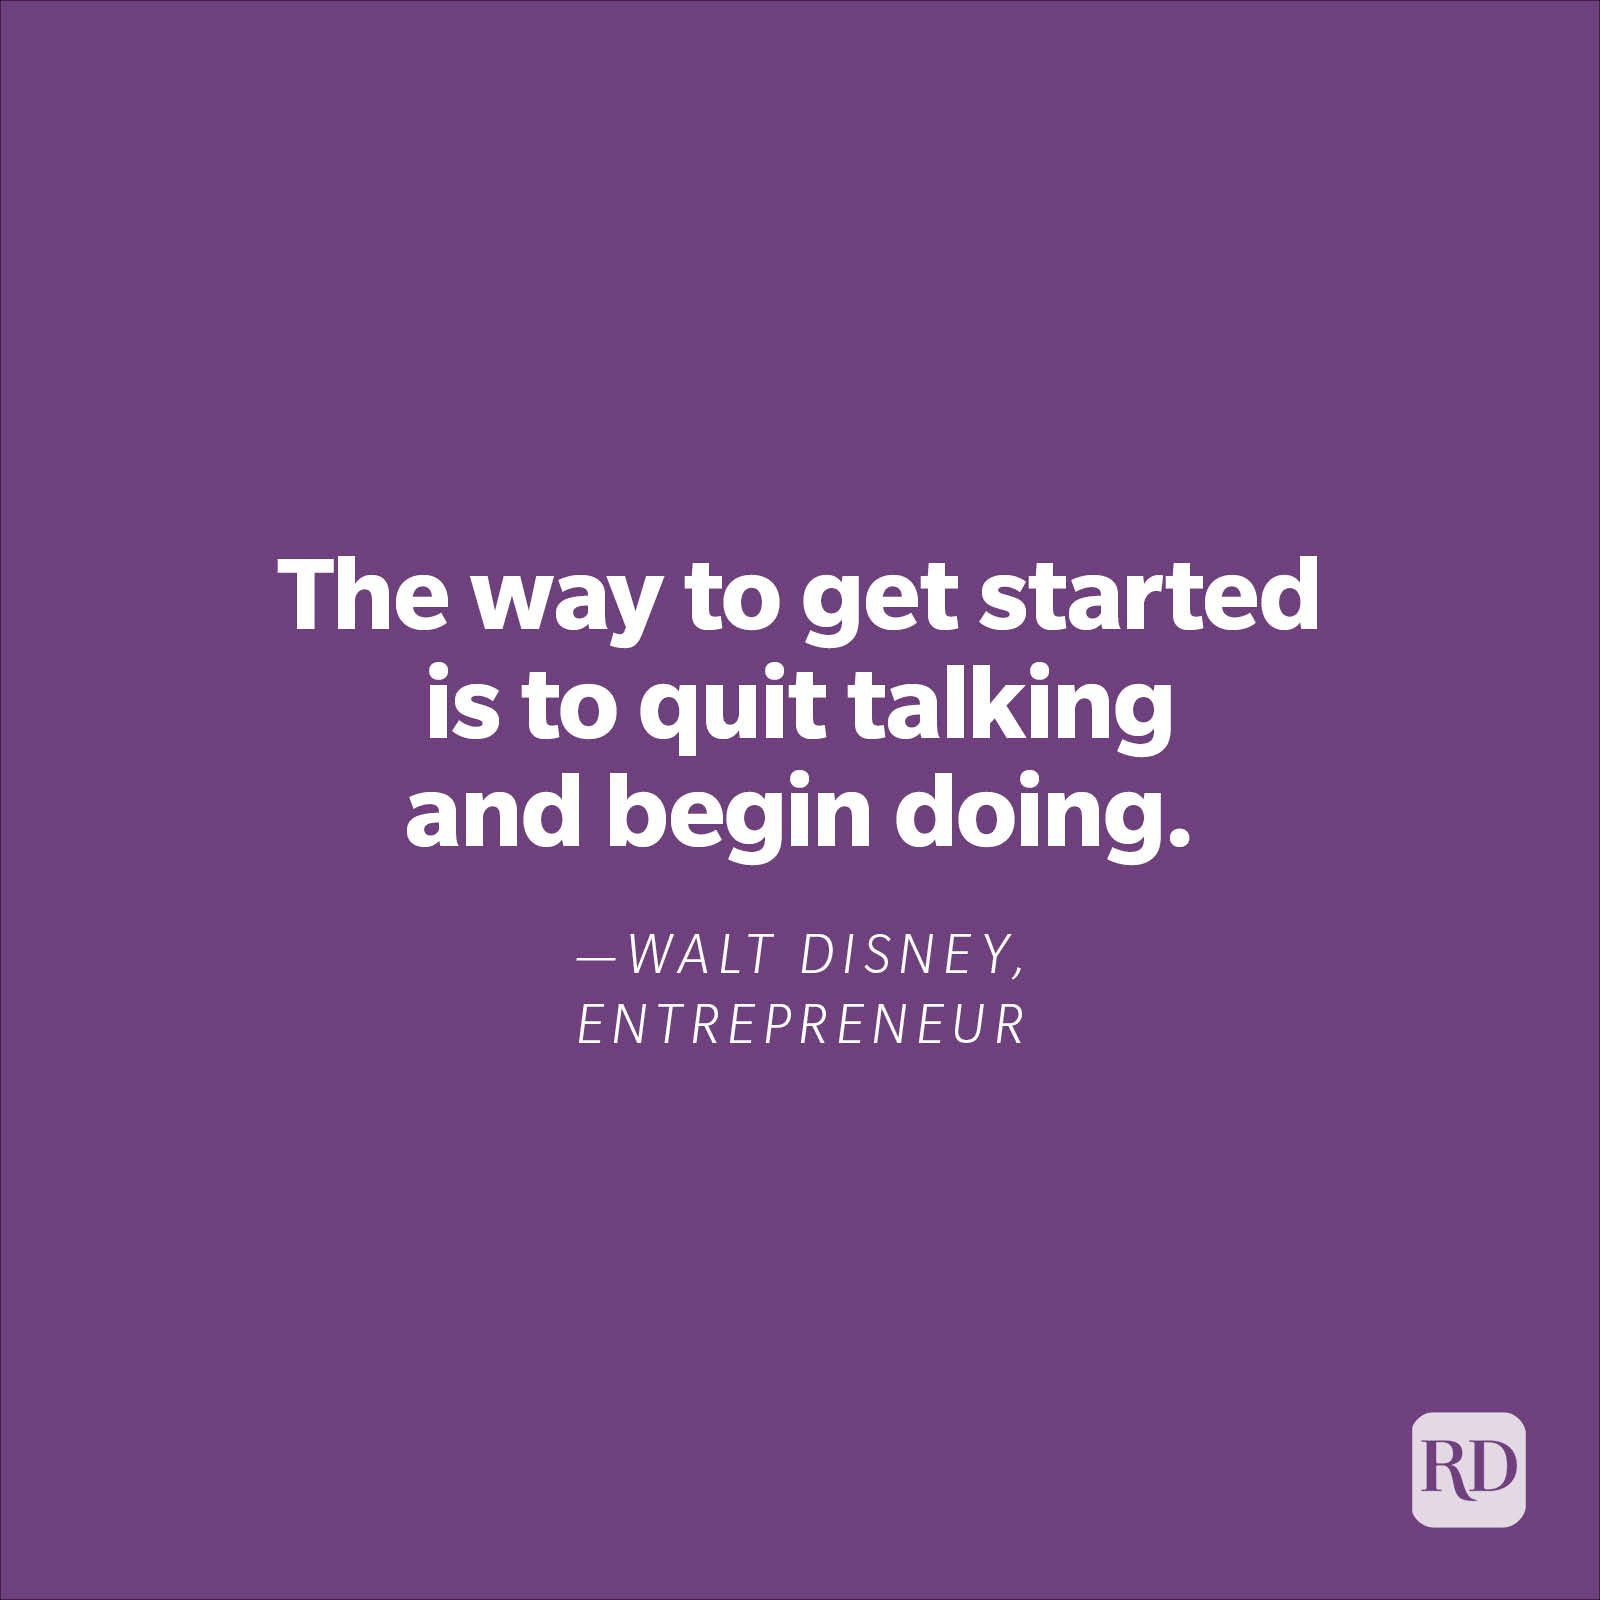 """""""The way to get started is to quit talking and begin doing."""" —Walt Disney, entrepreneur"""